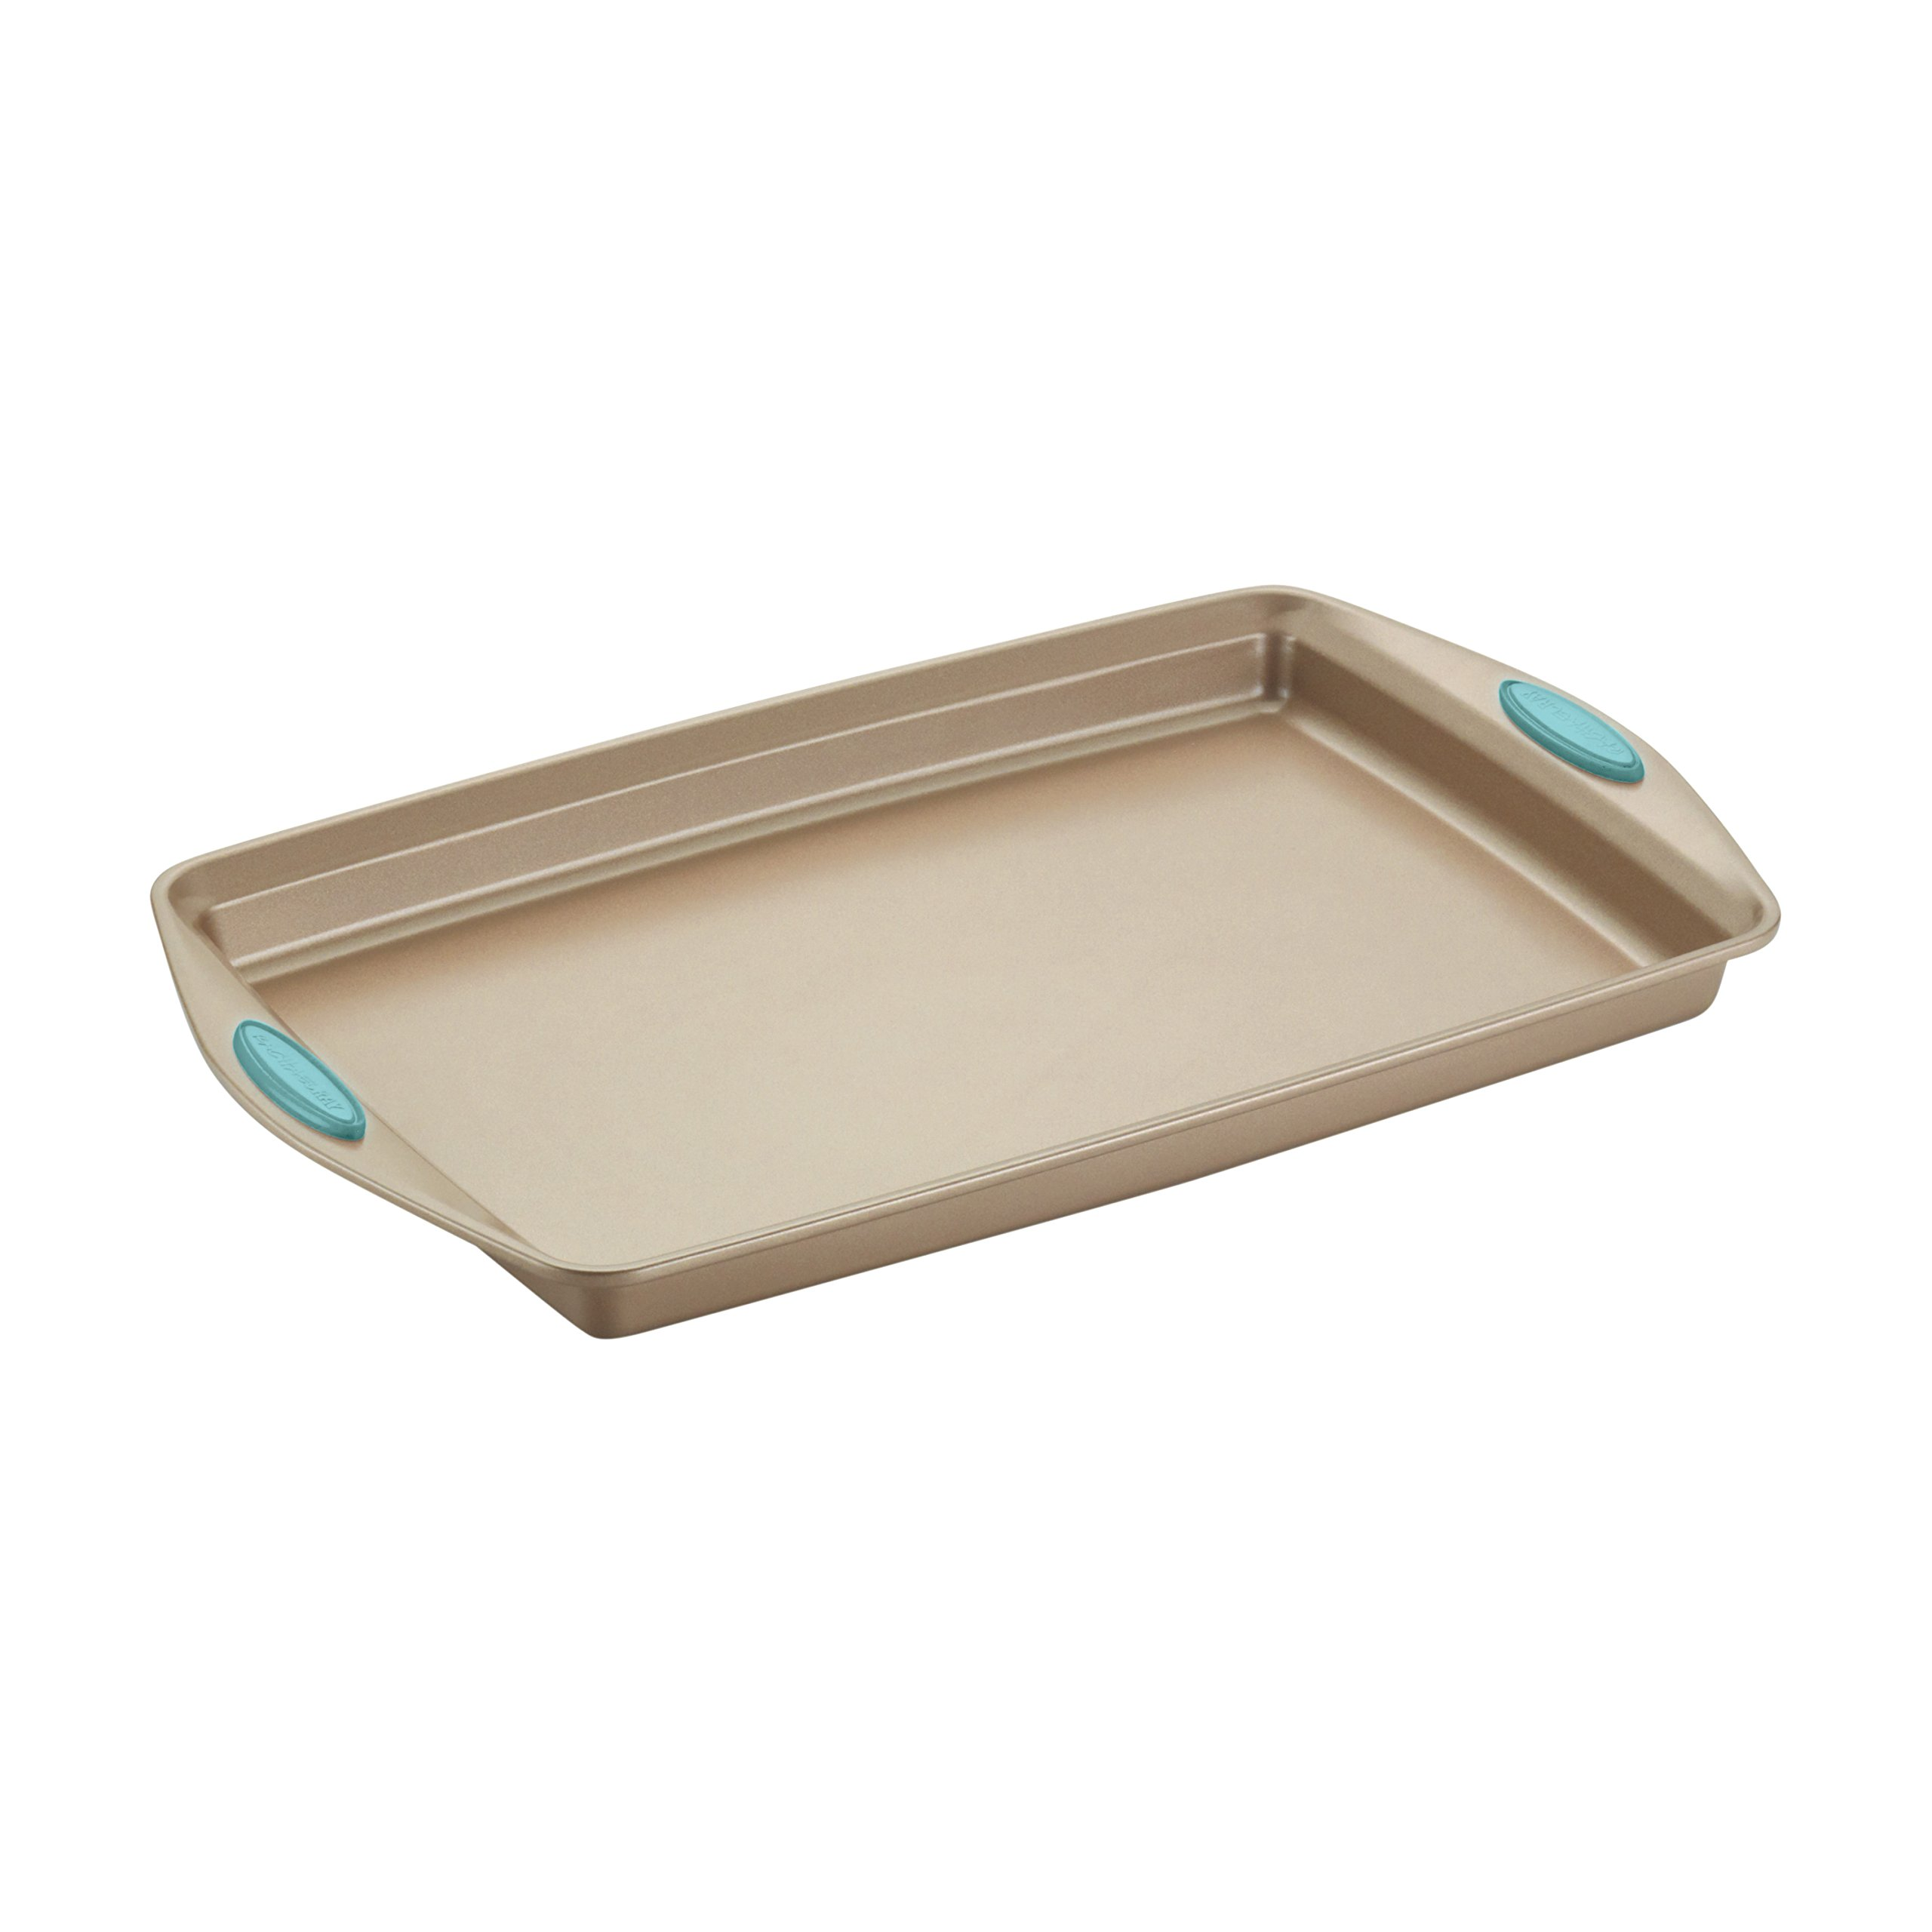 Rachael Ray Nonstick Bakeware 5-Piece Set, Latte Brown with Agave Blue Handle Grips by Rachael Ray (Image #9)